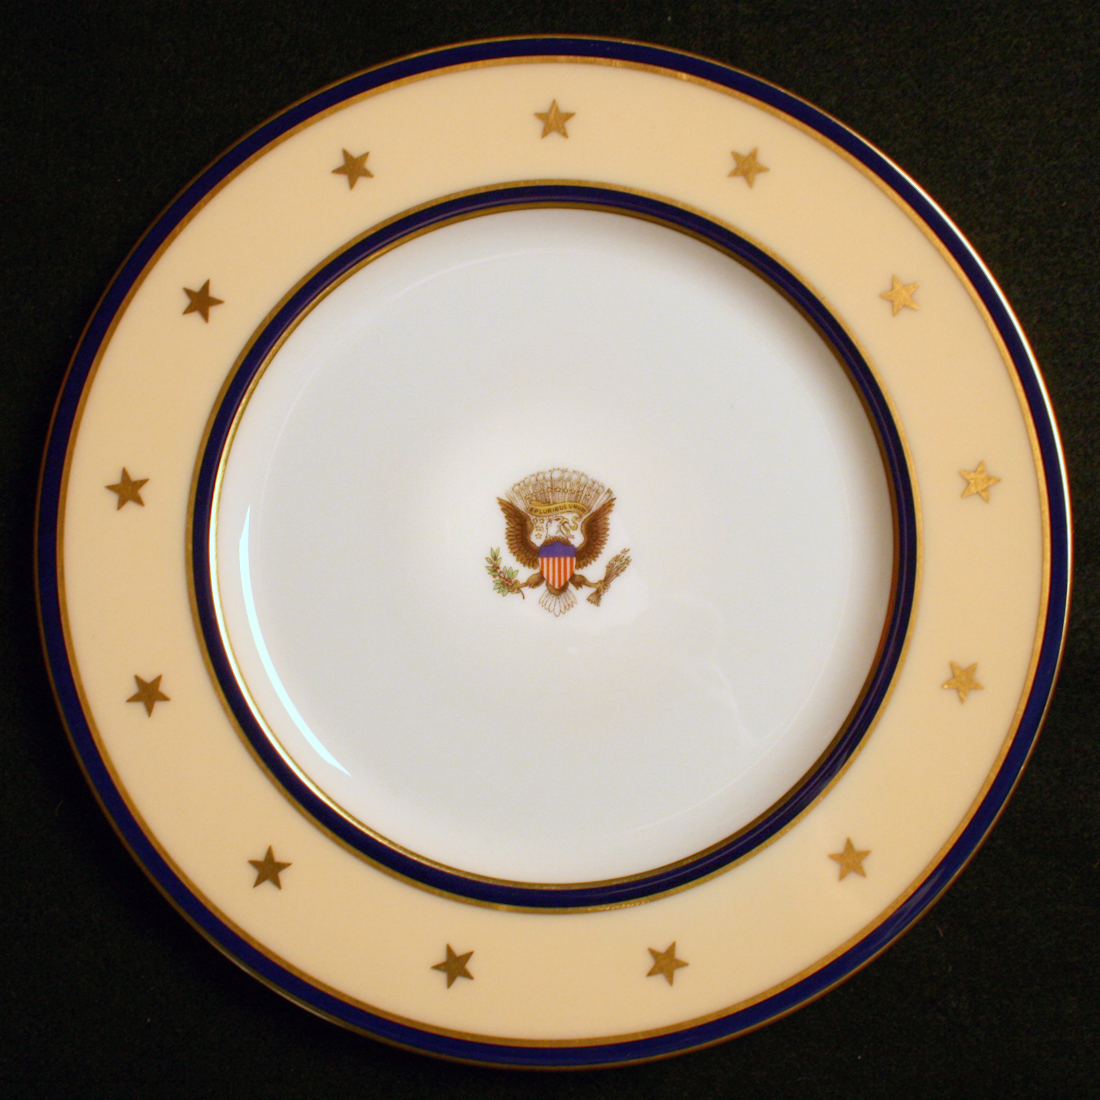 Official China USS Williamsburg Service Plate